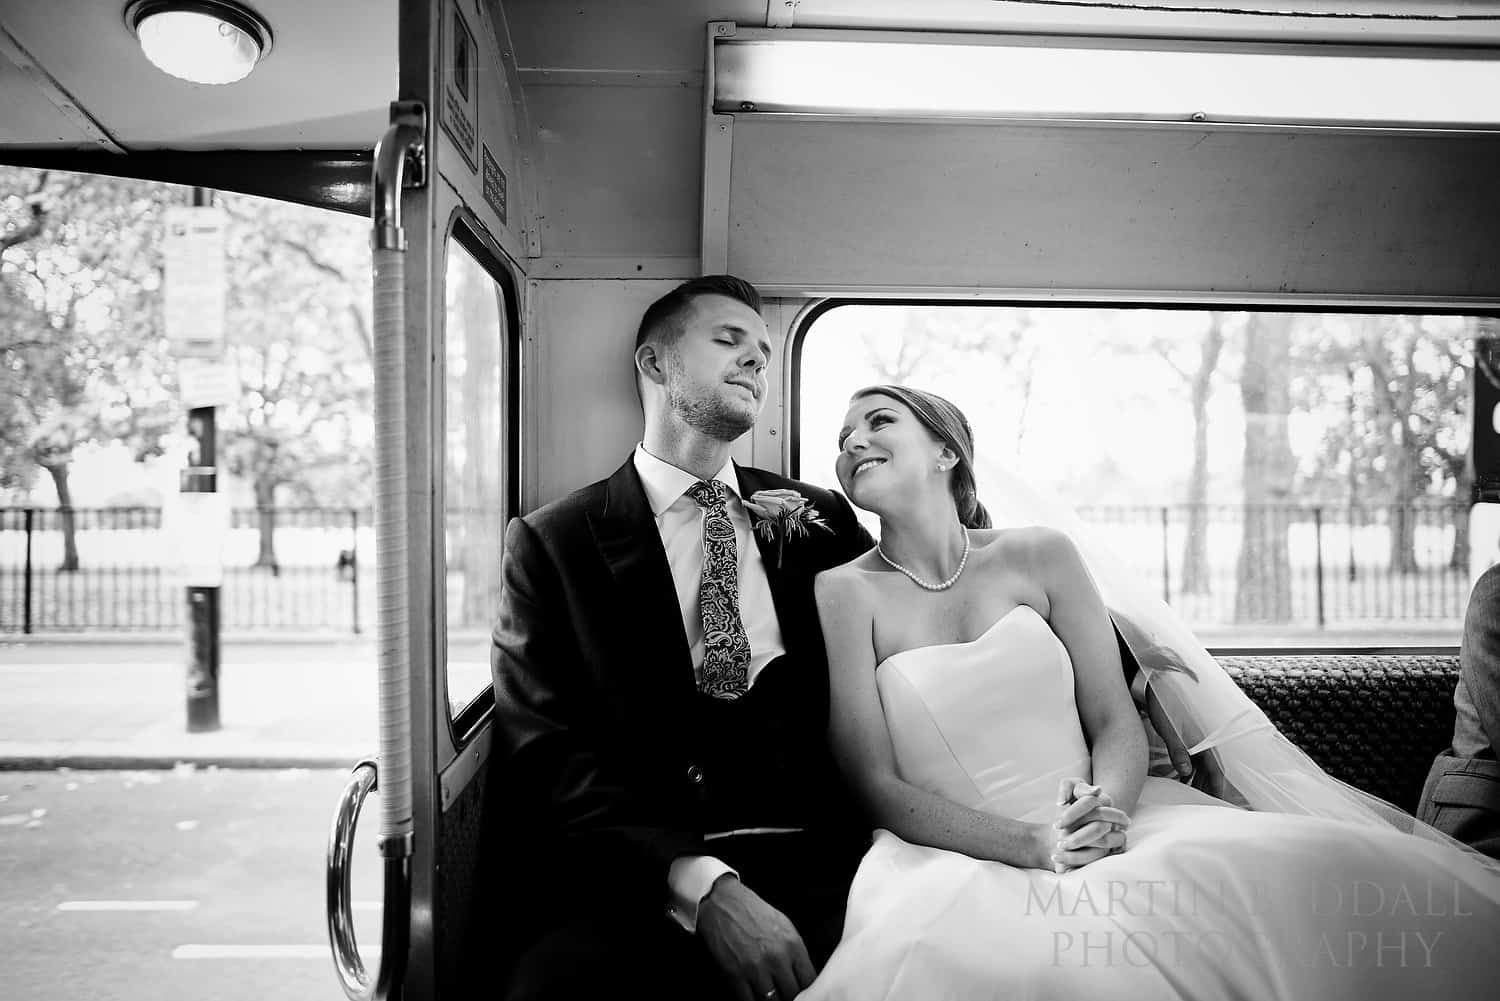 Just married and sat on the bus